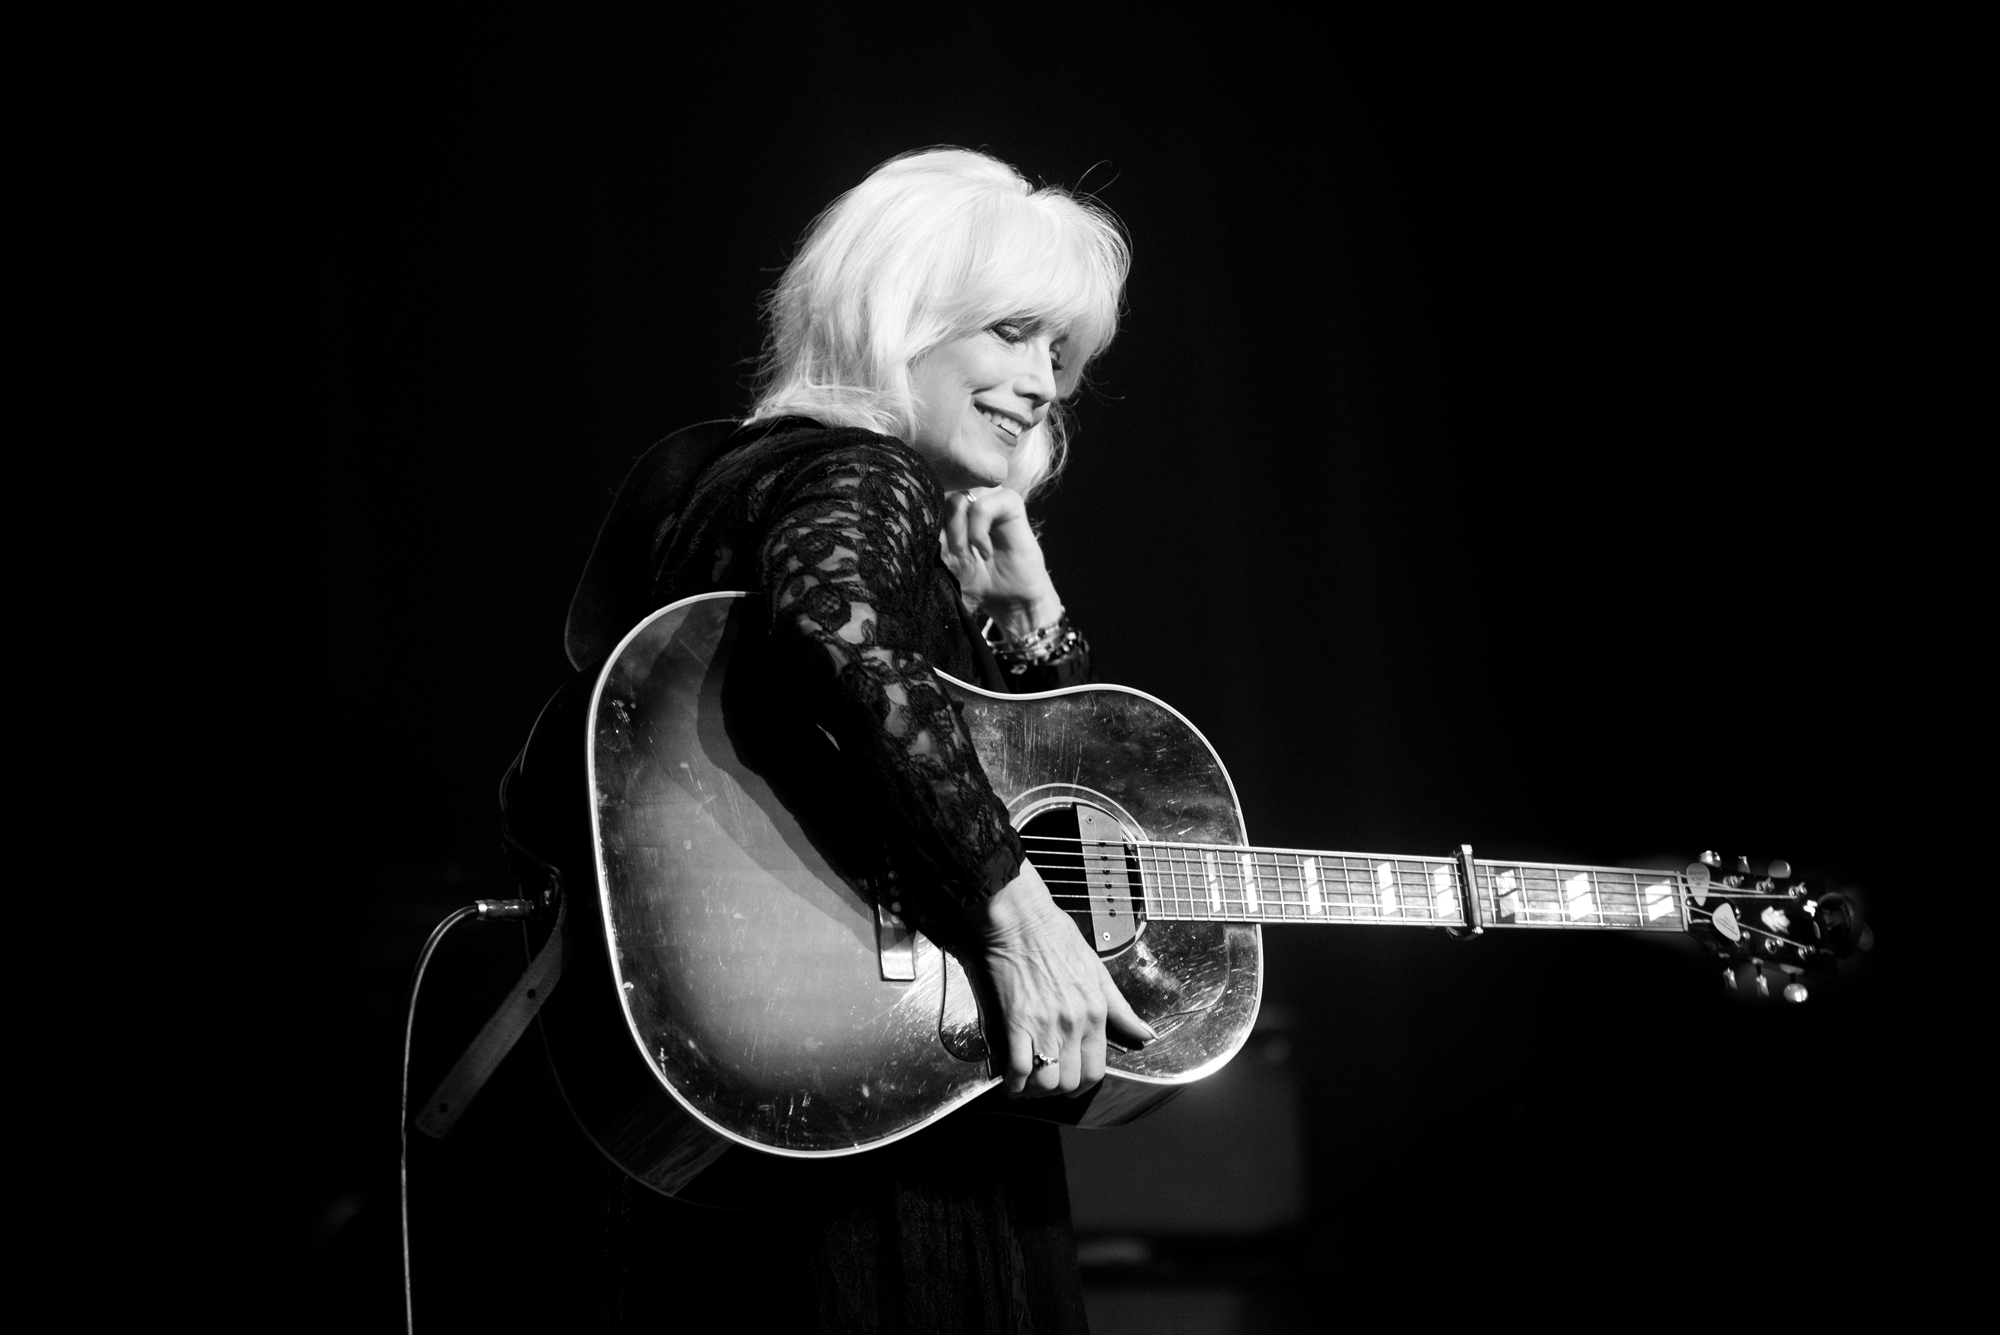 lindsey best music photography los angeles emmylou harris